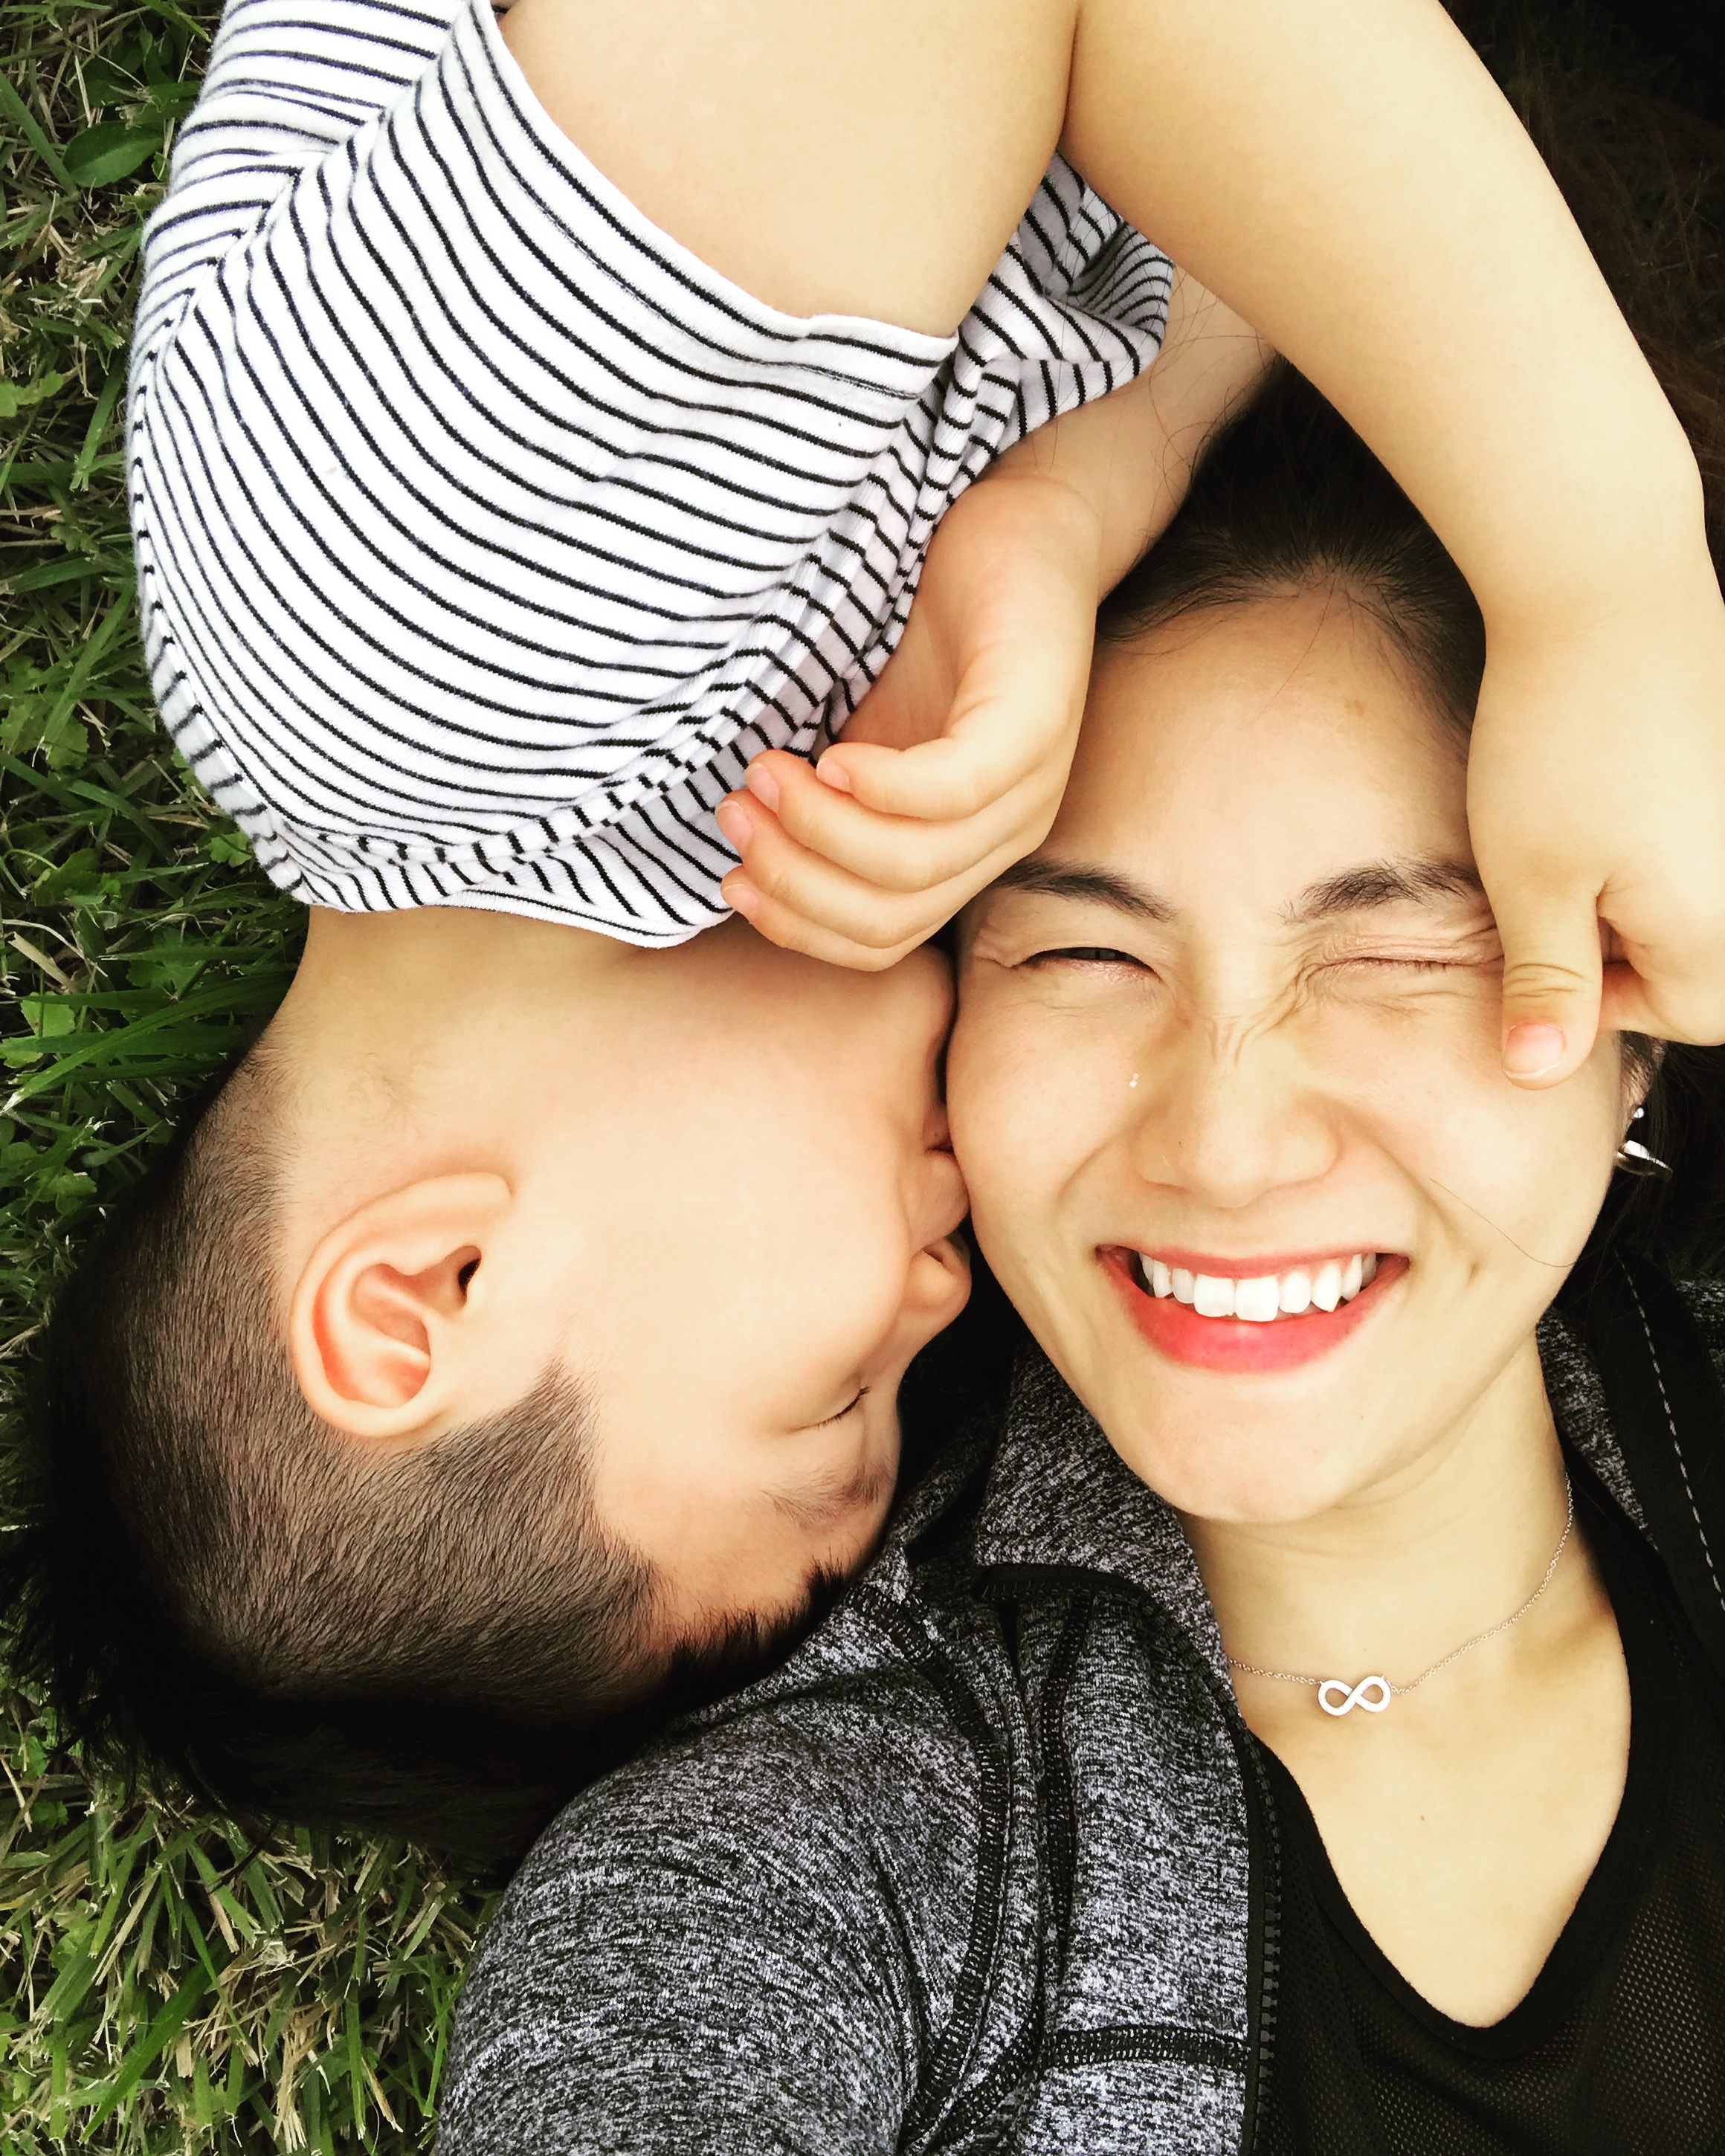 Grace with her son smiling and playing on the grass.